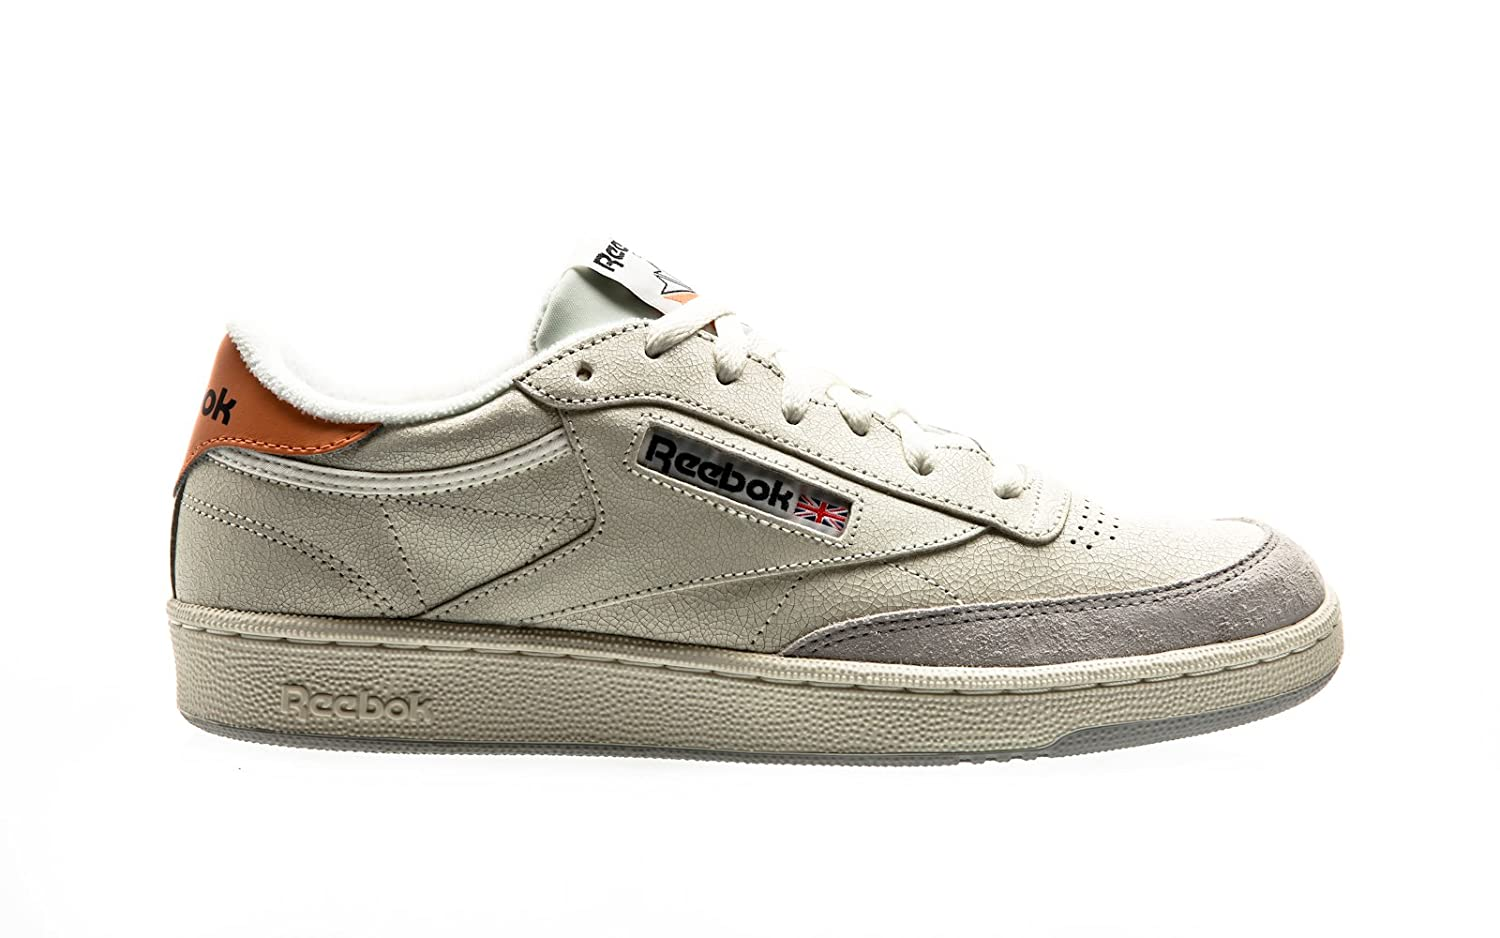 Reebok Club C85 FT Beige Grey Orange BS9749